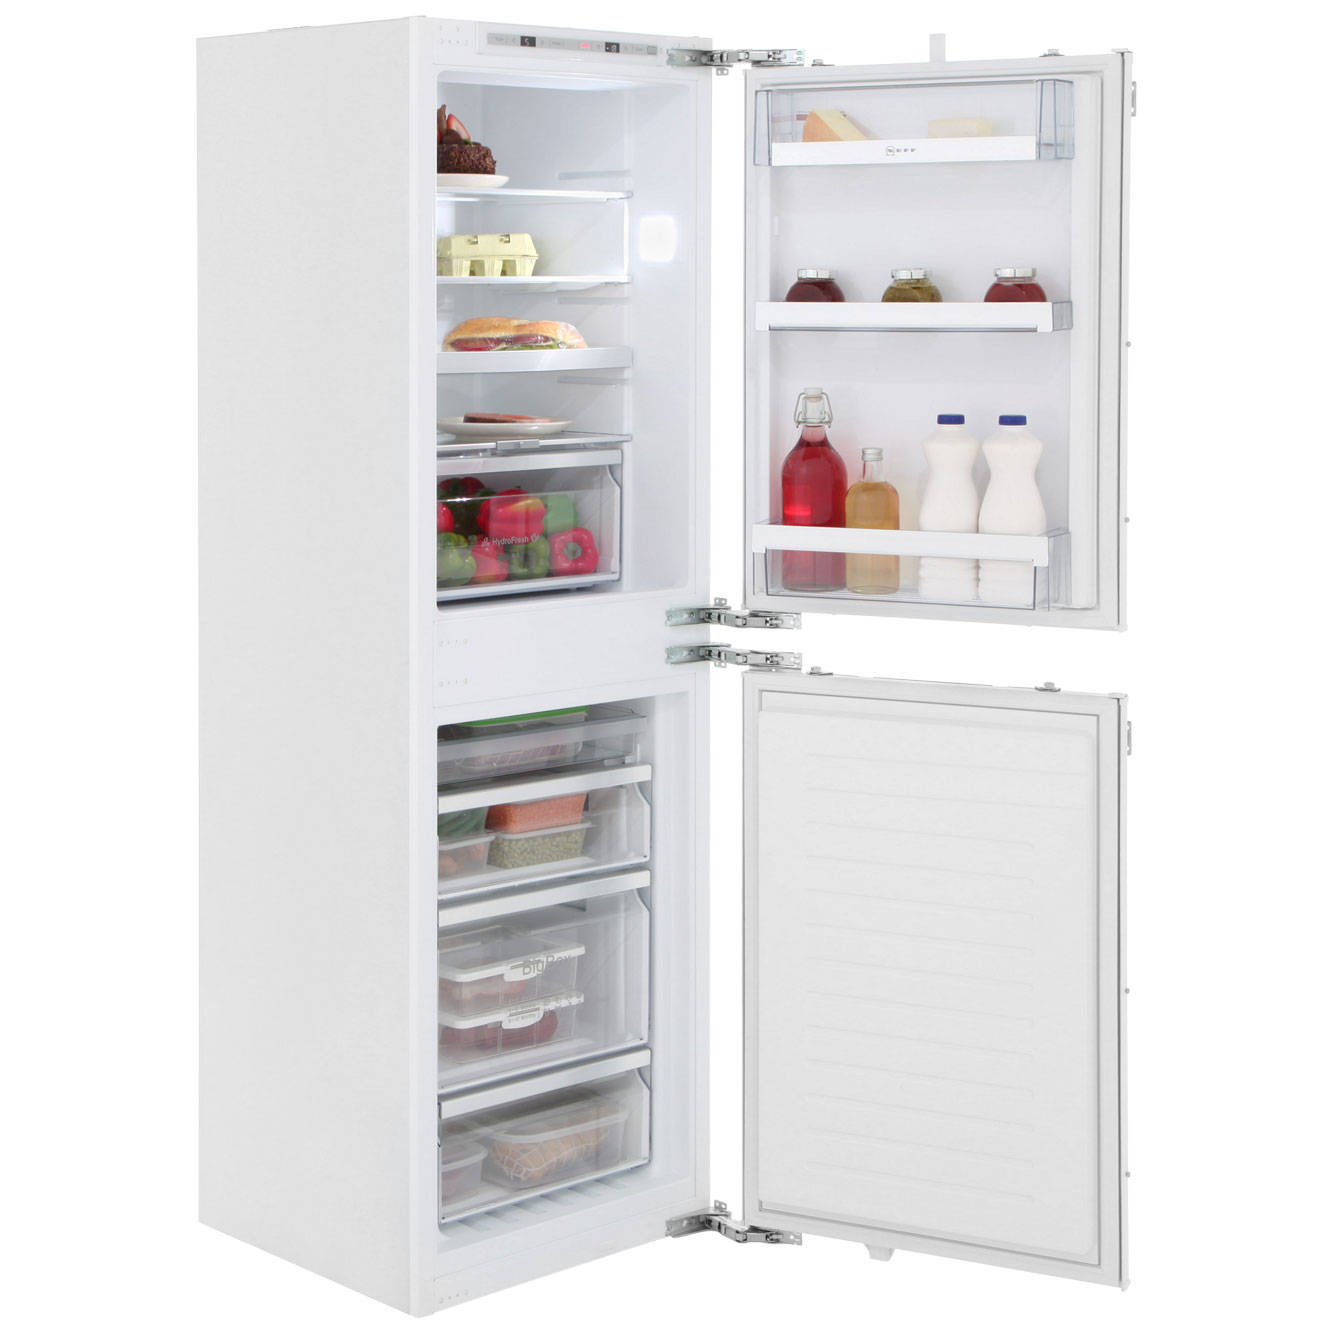 Neff KI7853D30G Built-in NoFrost Fridge Freezer